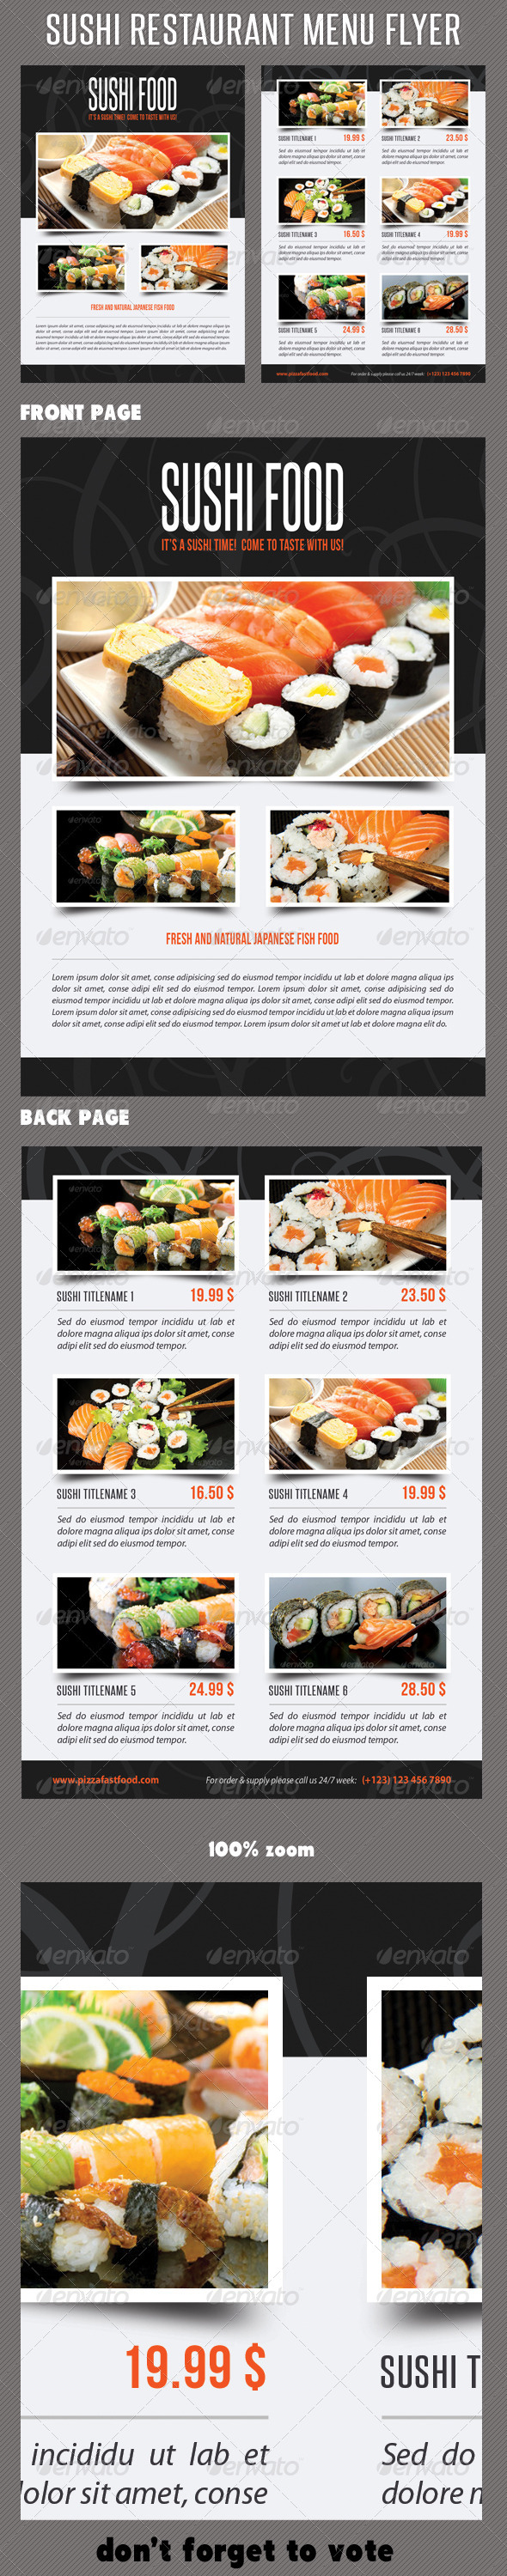 Sushi Restaurant Menu Flyer V01